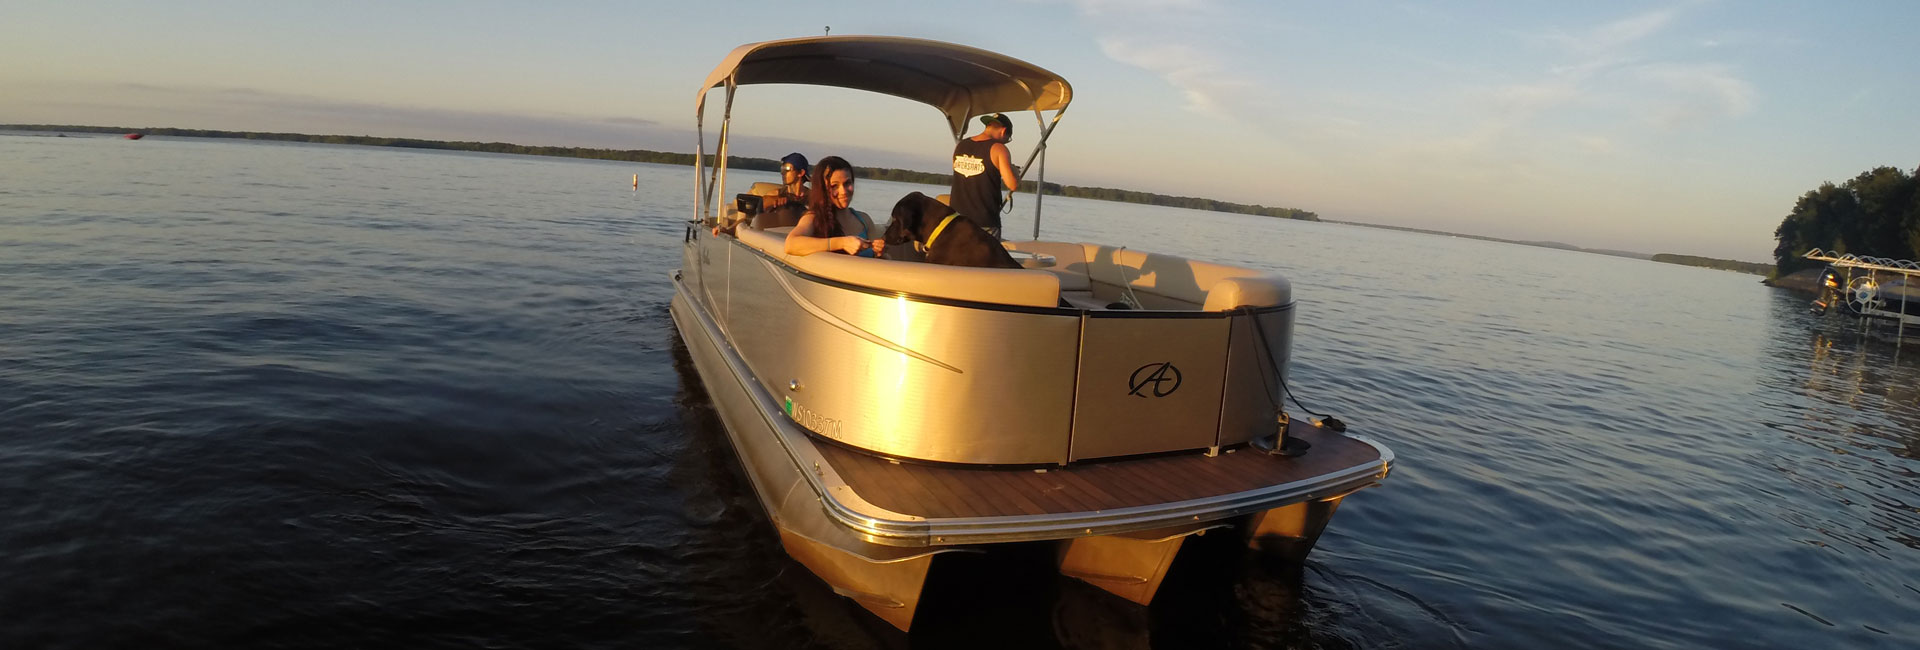 Pontoon Rentals on Castle Rock Lake